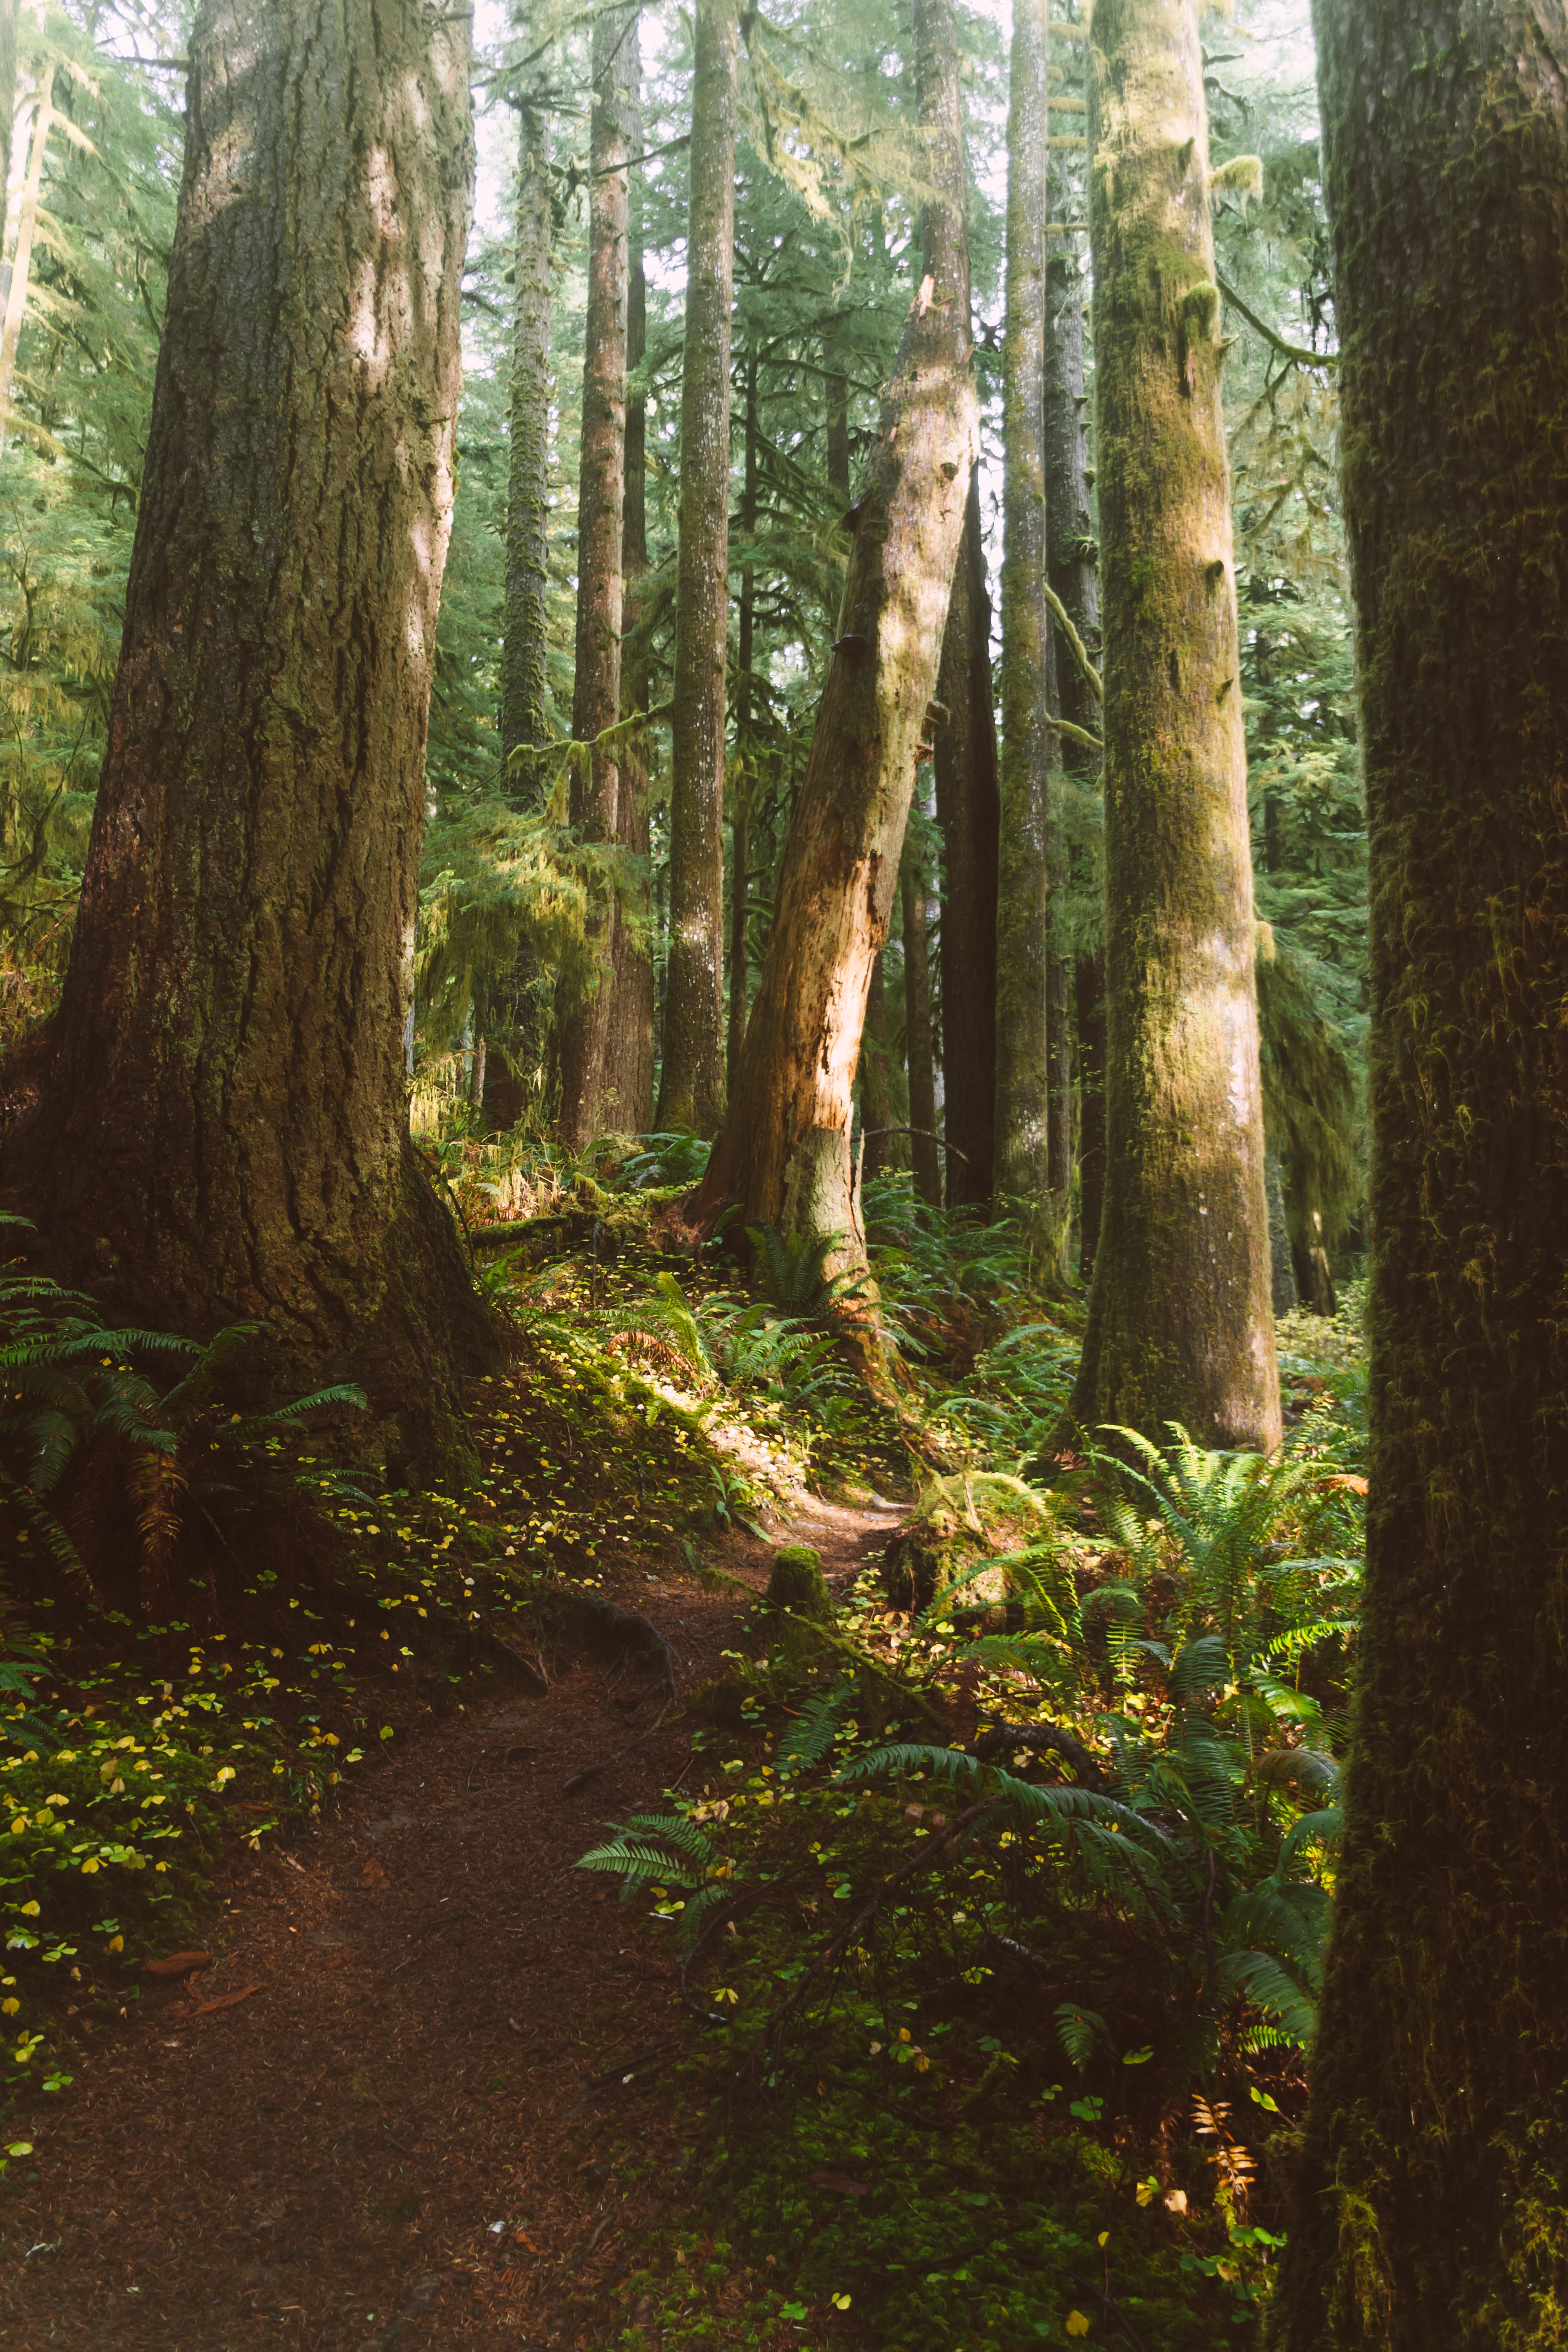 144937 download wallpaper Nature, Trees, Fern, Forest, Vegetation, Path screensavers and pictures for free